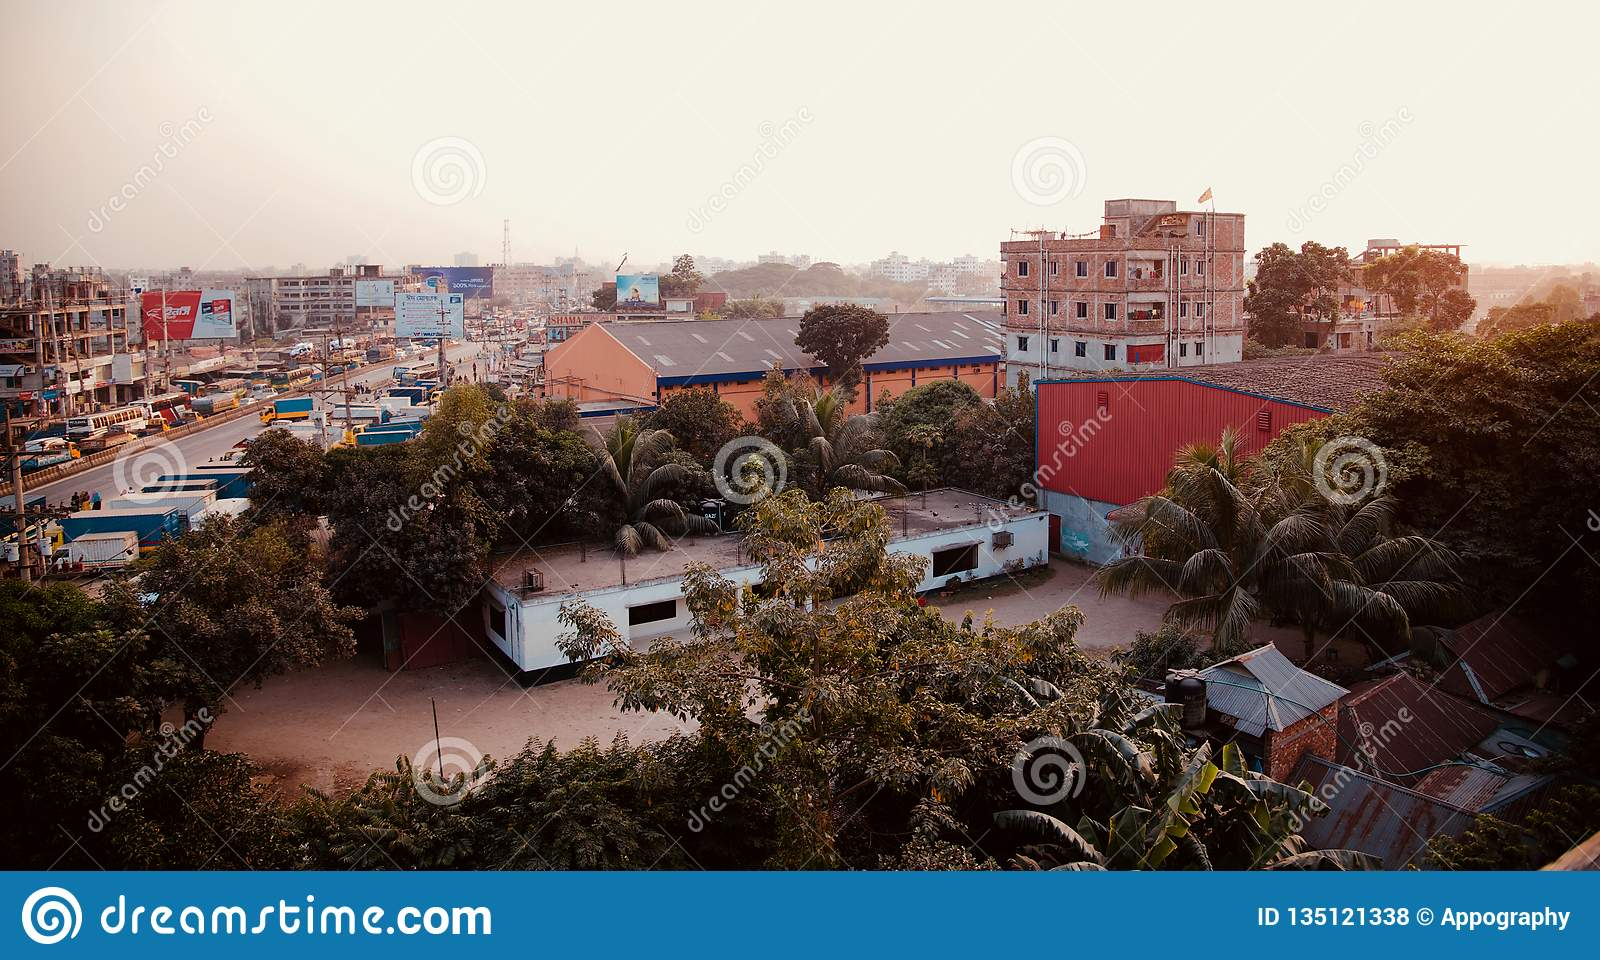 Architectural buildings in Dhaka city